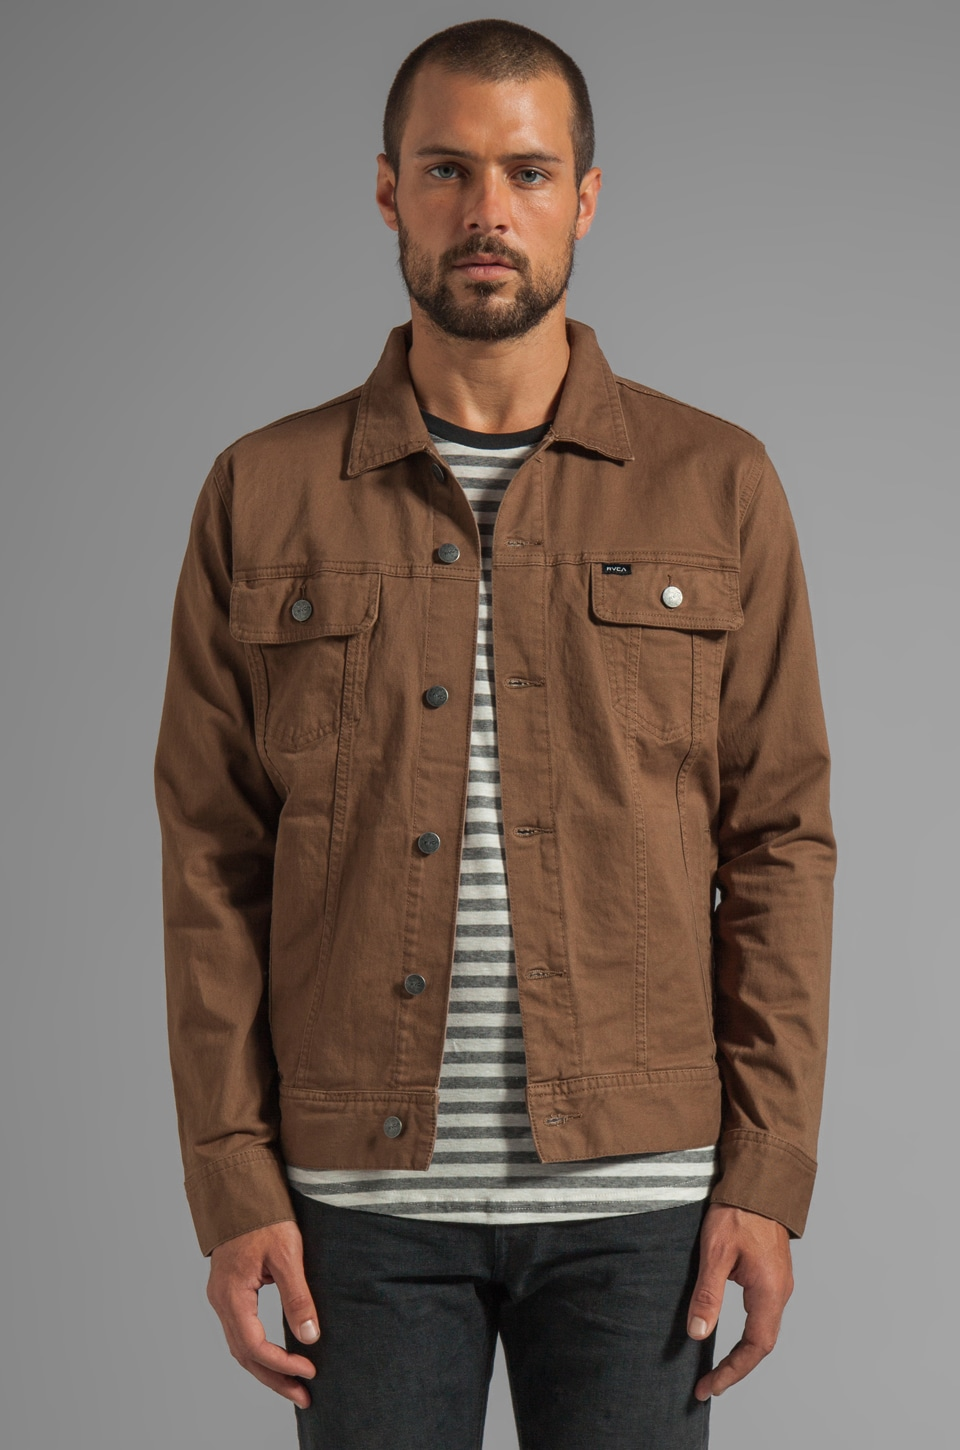 RVCA Jeano Denim Jacket in Cub